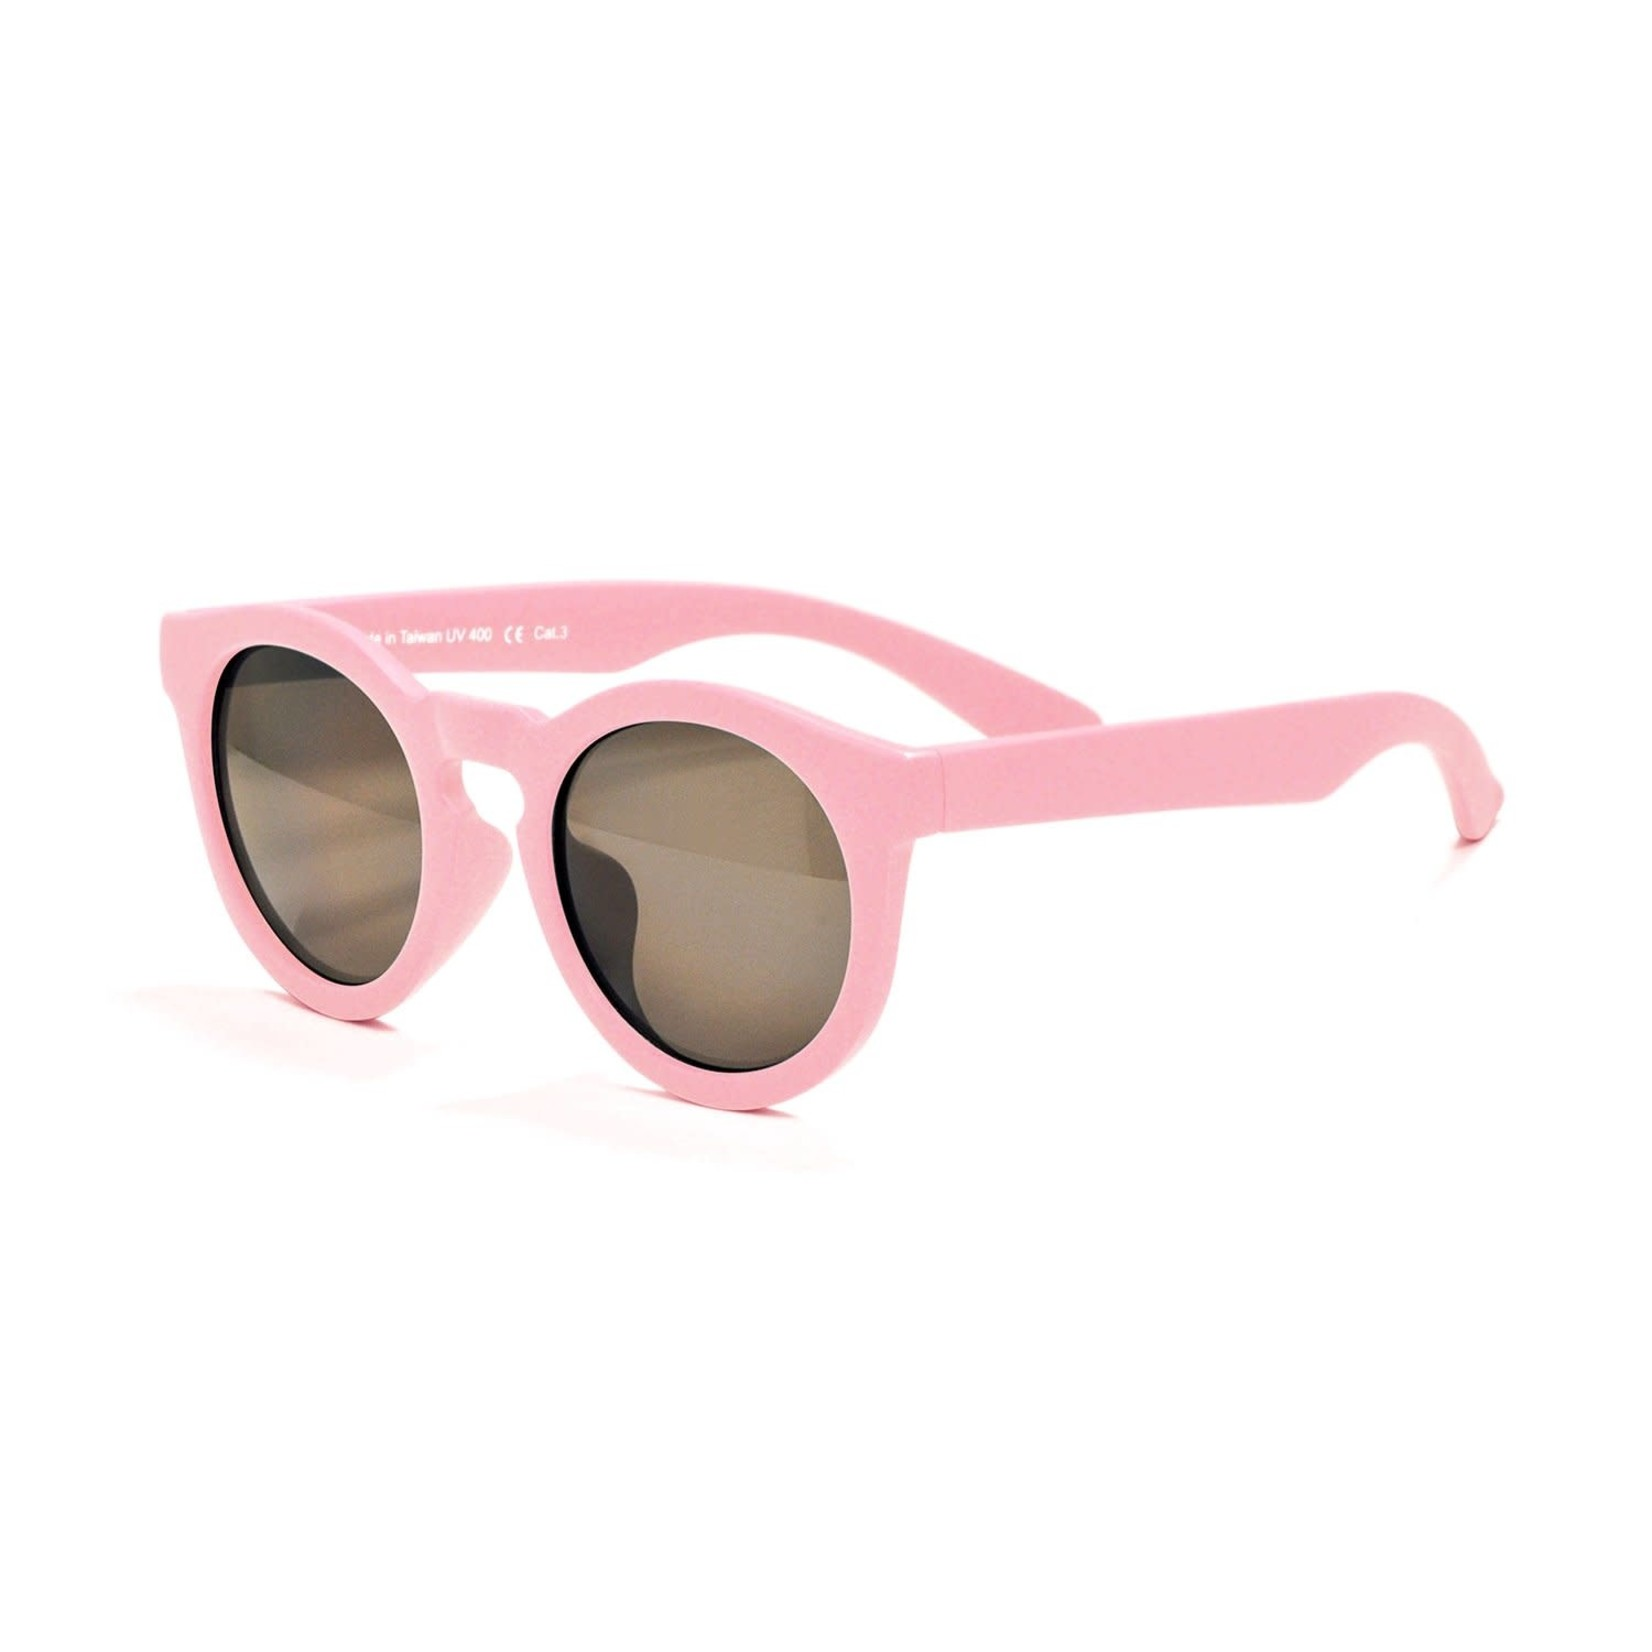 Real Shades Youth Chill Flexible Frame Sunglasses Dusty Rose